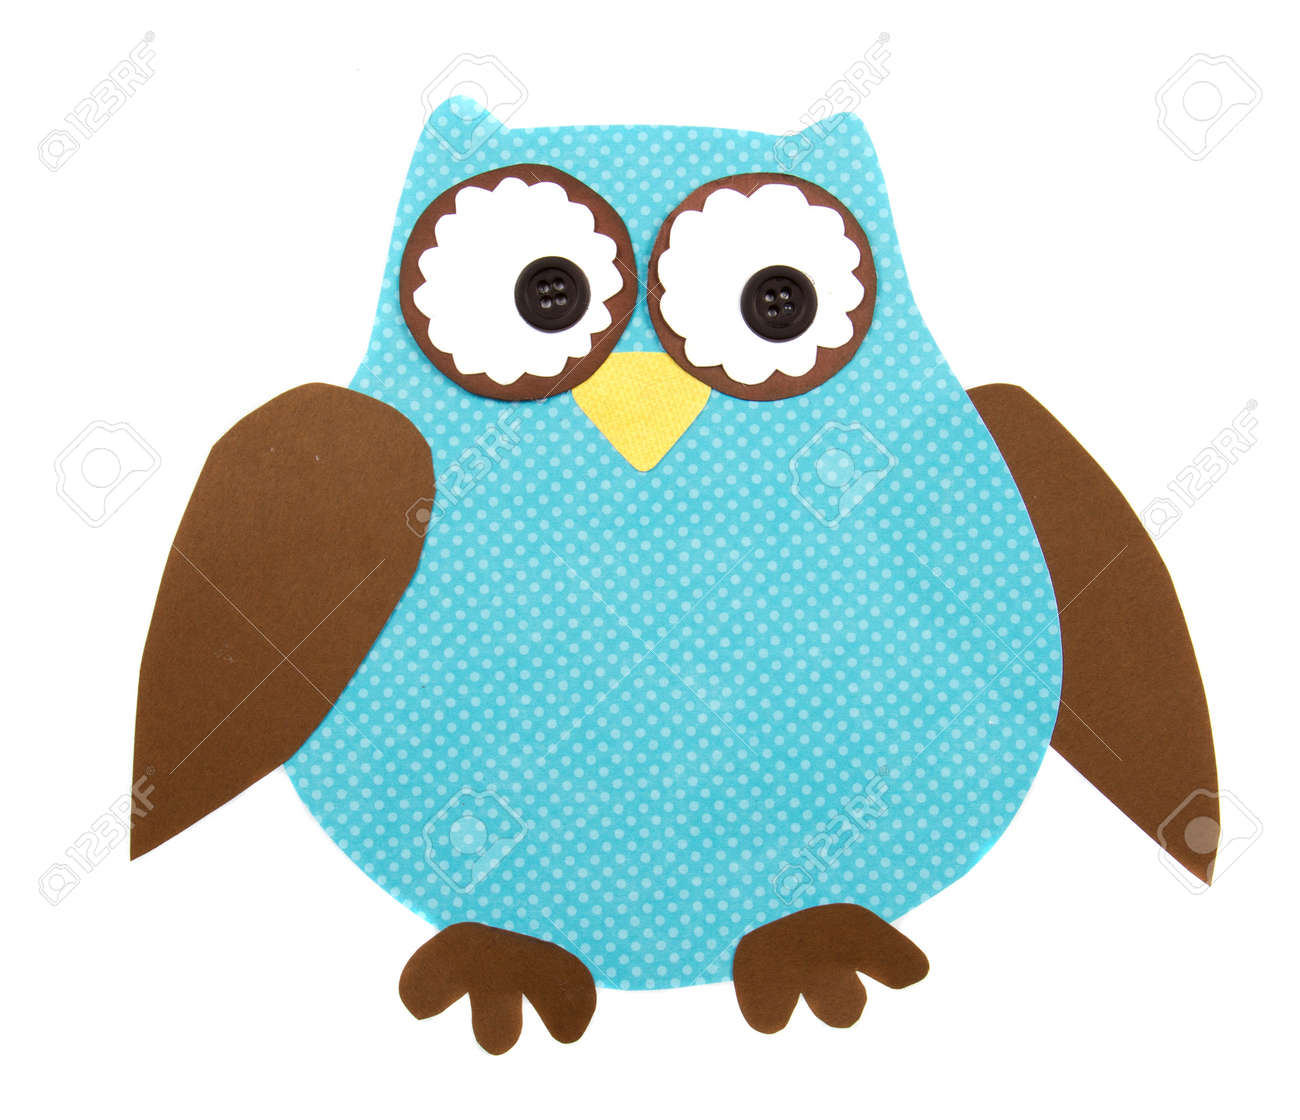 A colorful owl cut out of paper, isolated on a white background Stock Photo - 12892970